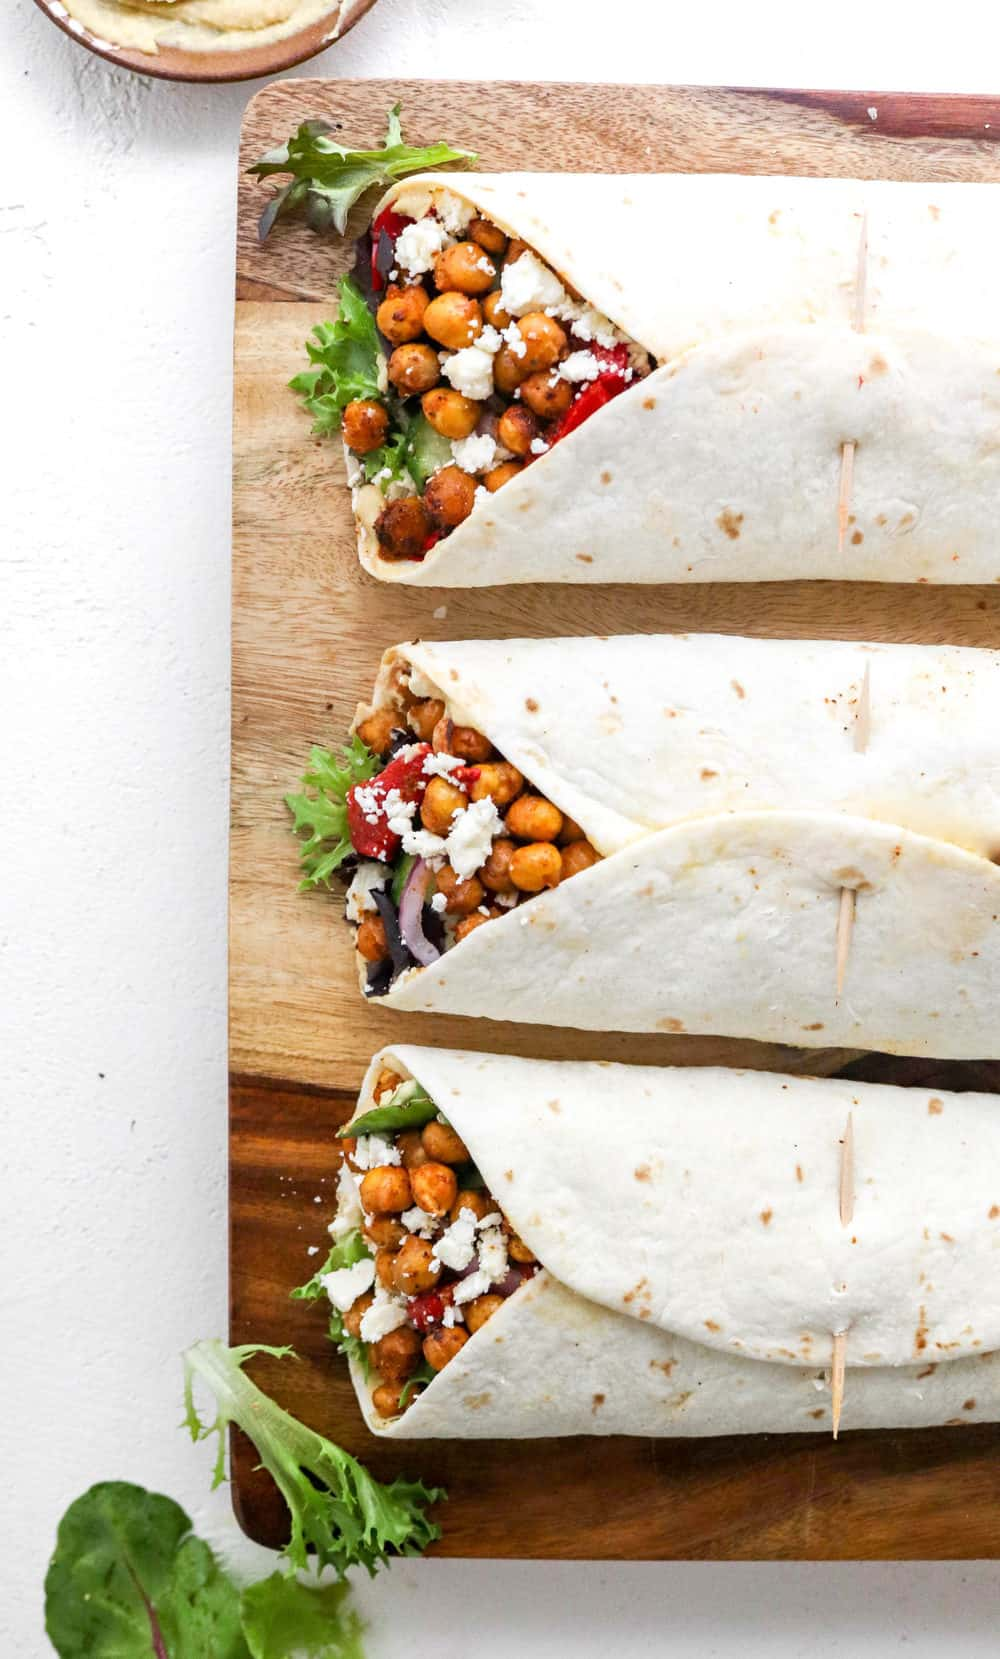 Three tortilla hummus wraps filled with crispy chickpeas and veggies on top of a wooden cutting board on a white surface.